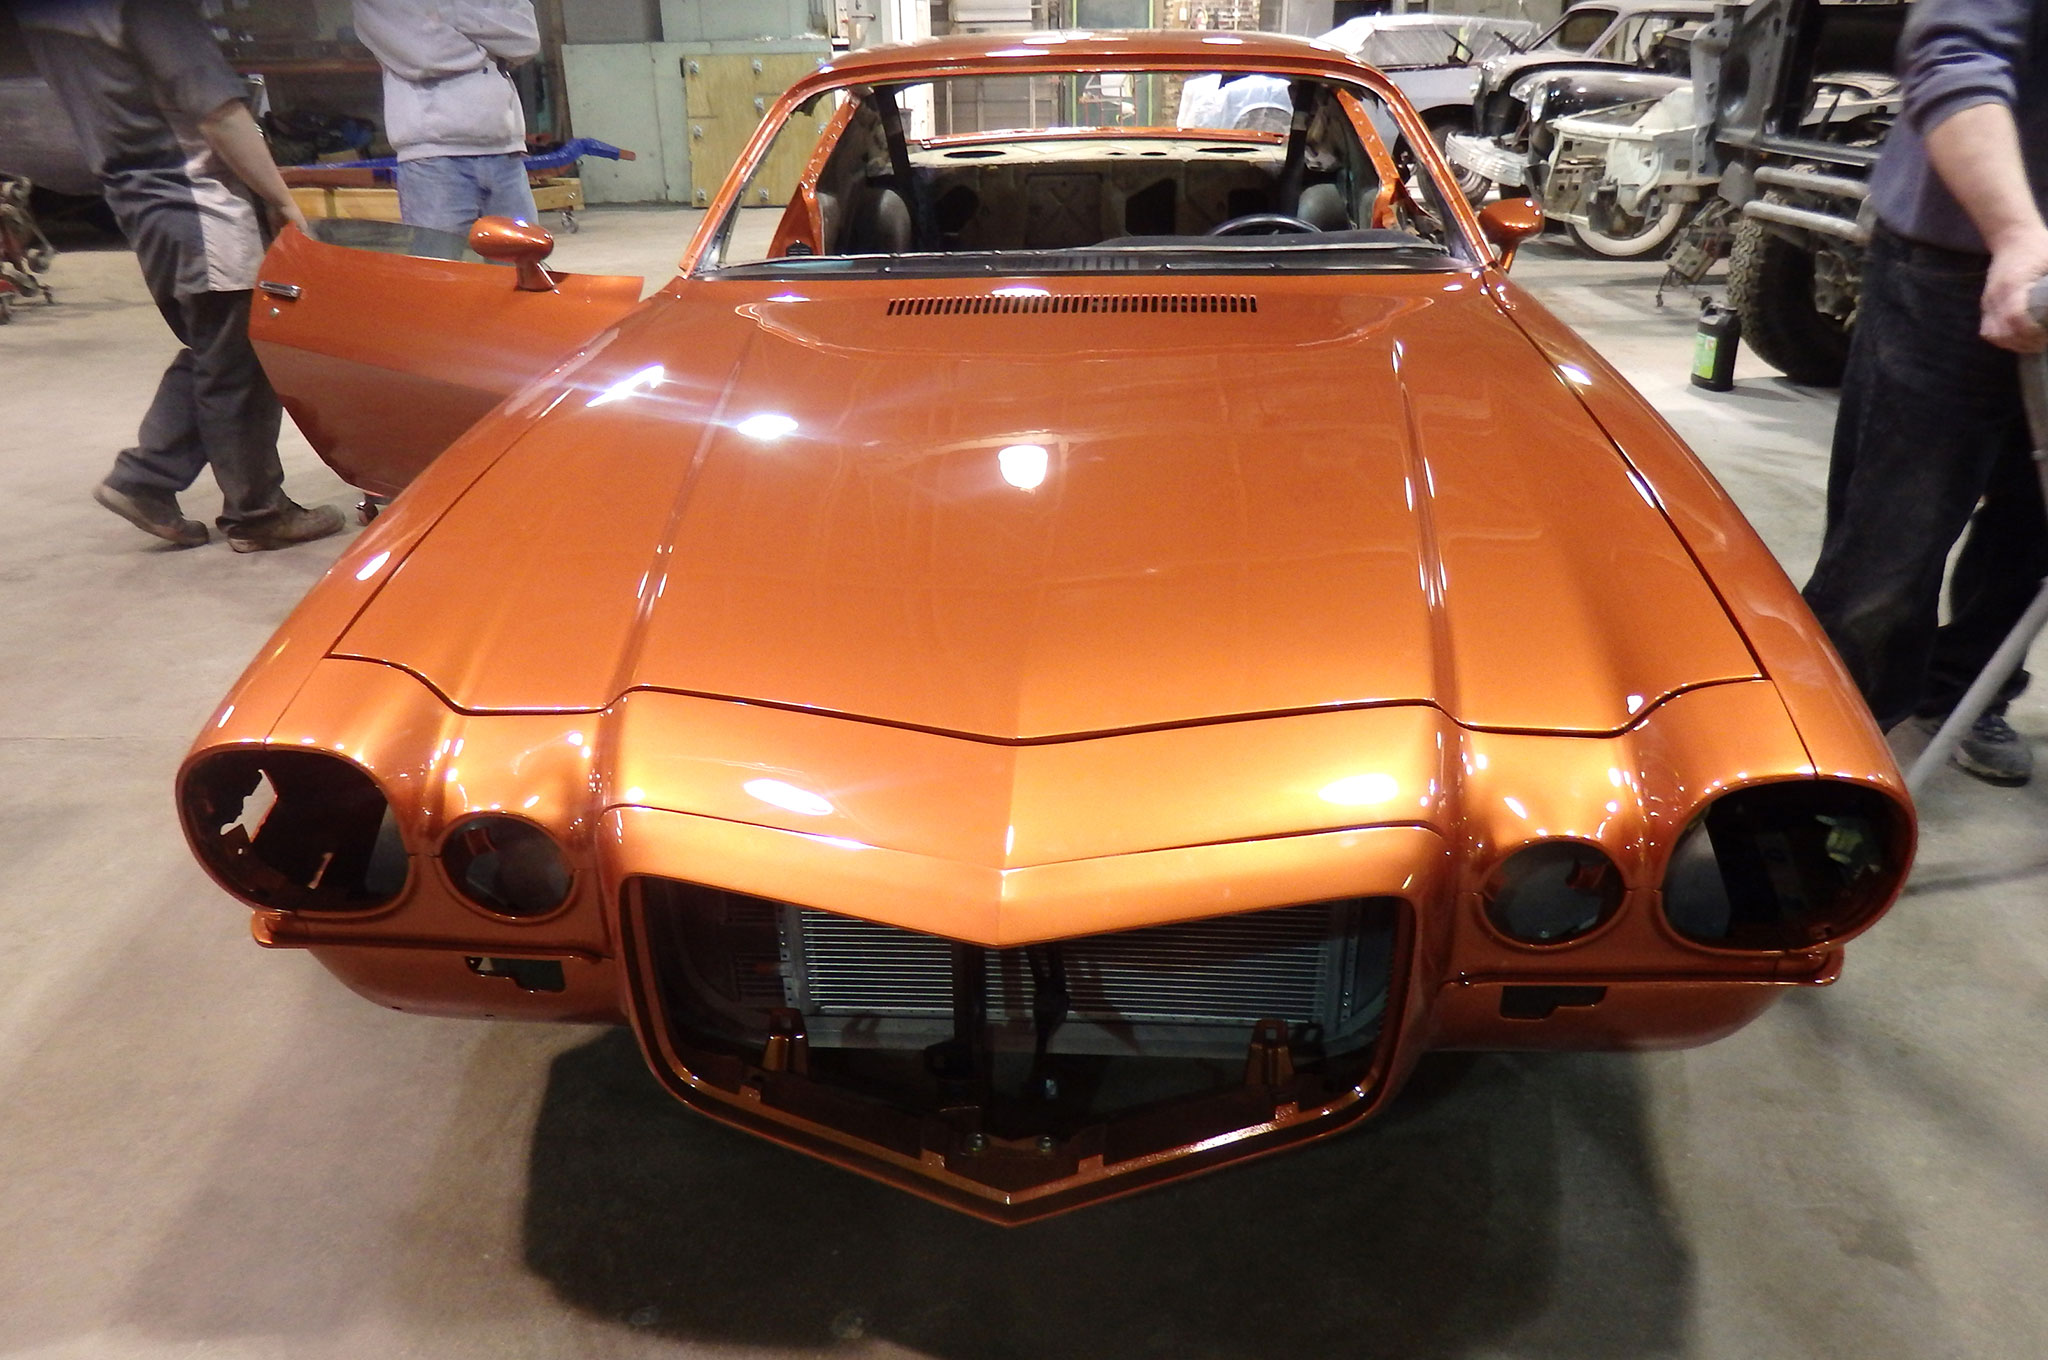 Use These Paint and Bodywork Steps to Achieve a Show Car Finish